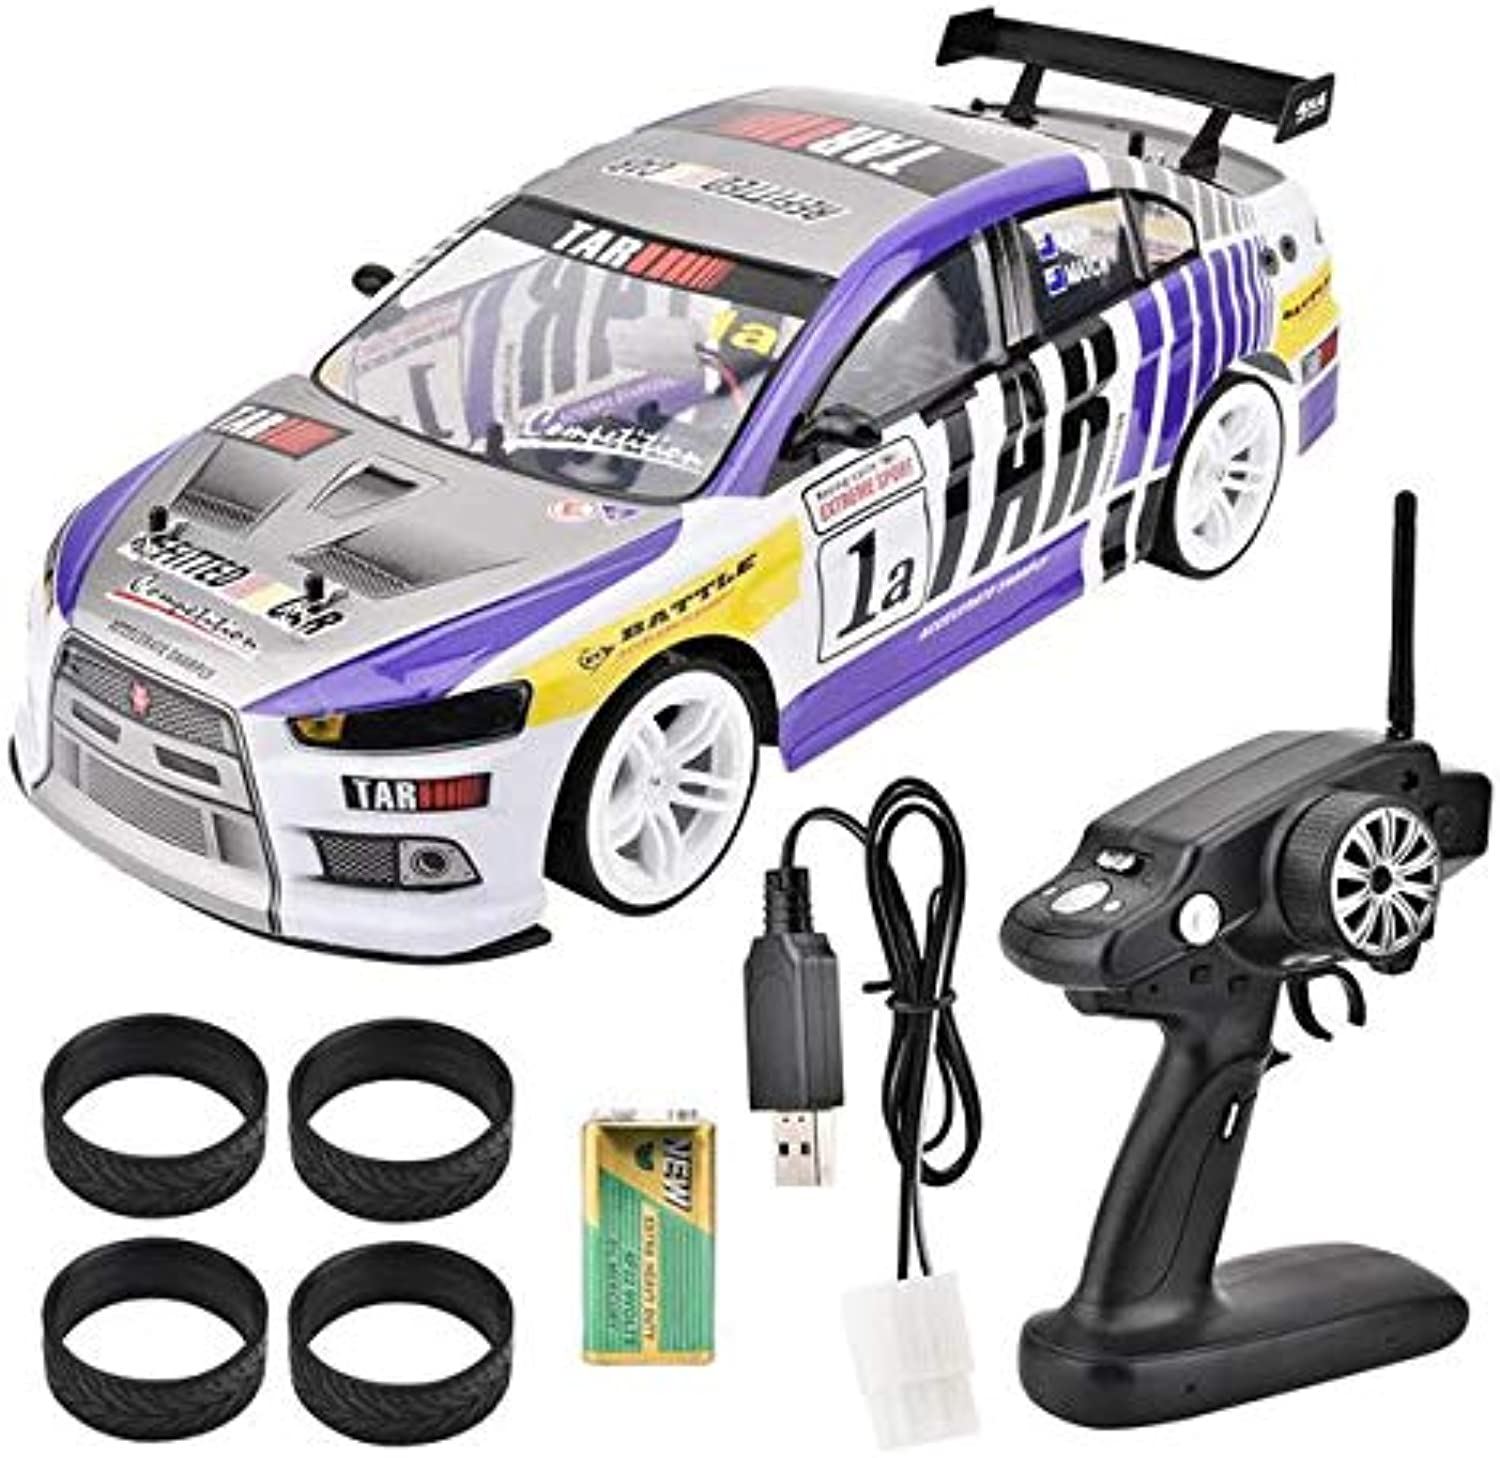 RC Drift Car Toy, USB 1 10 FourWheels Drive 4WD Remote Control Drift Car RC Racing Car Model Toy Vehicle, (OneBattery Compartment(40km h)